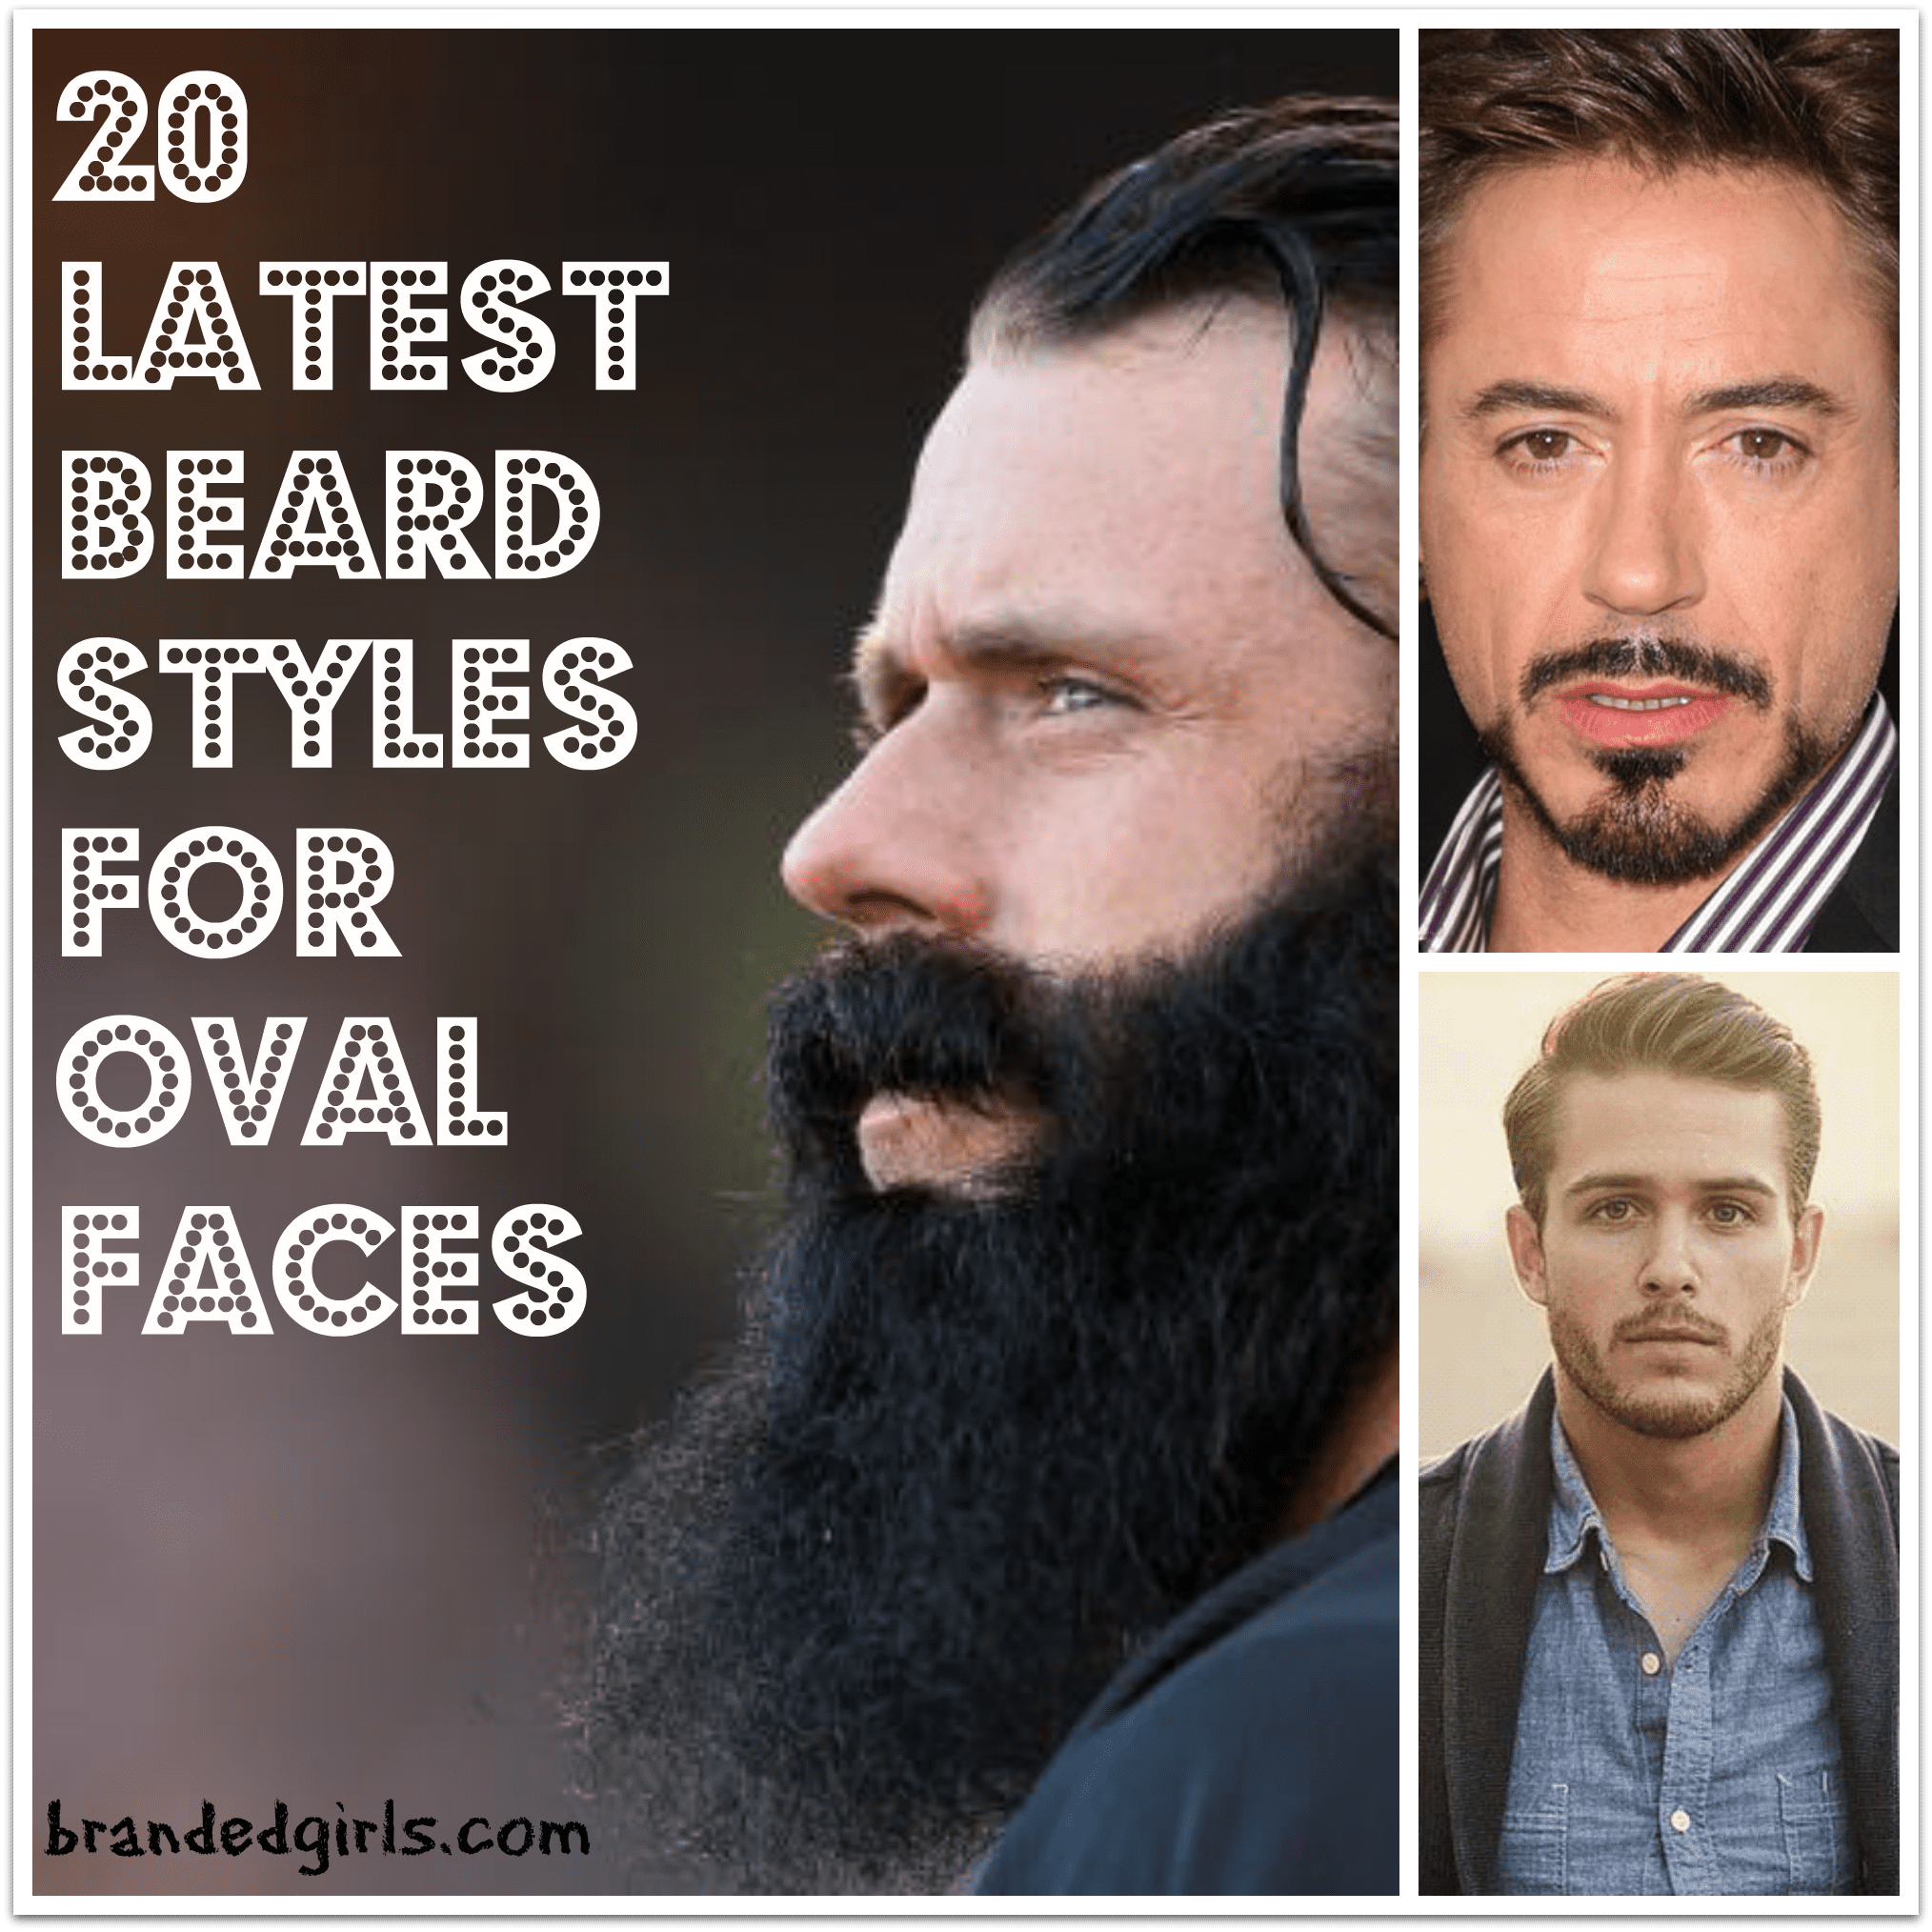 Beard Styles For Oval Faces – 20 New Styles To Try This Year